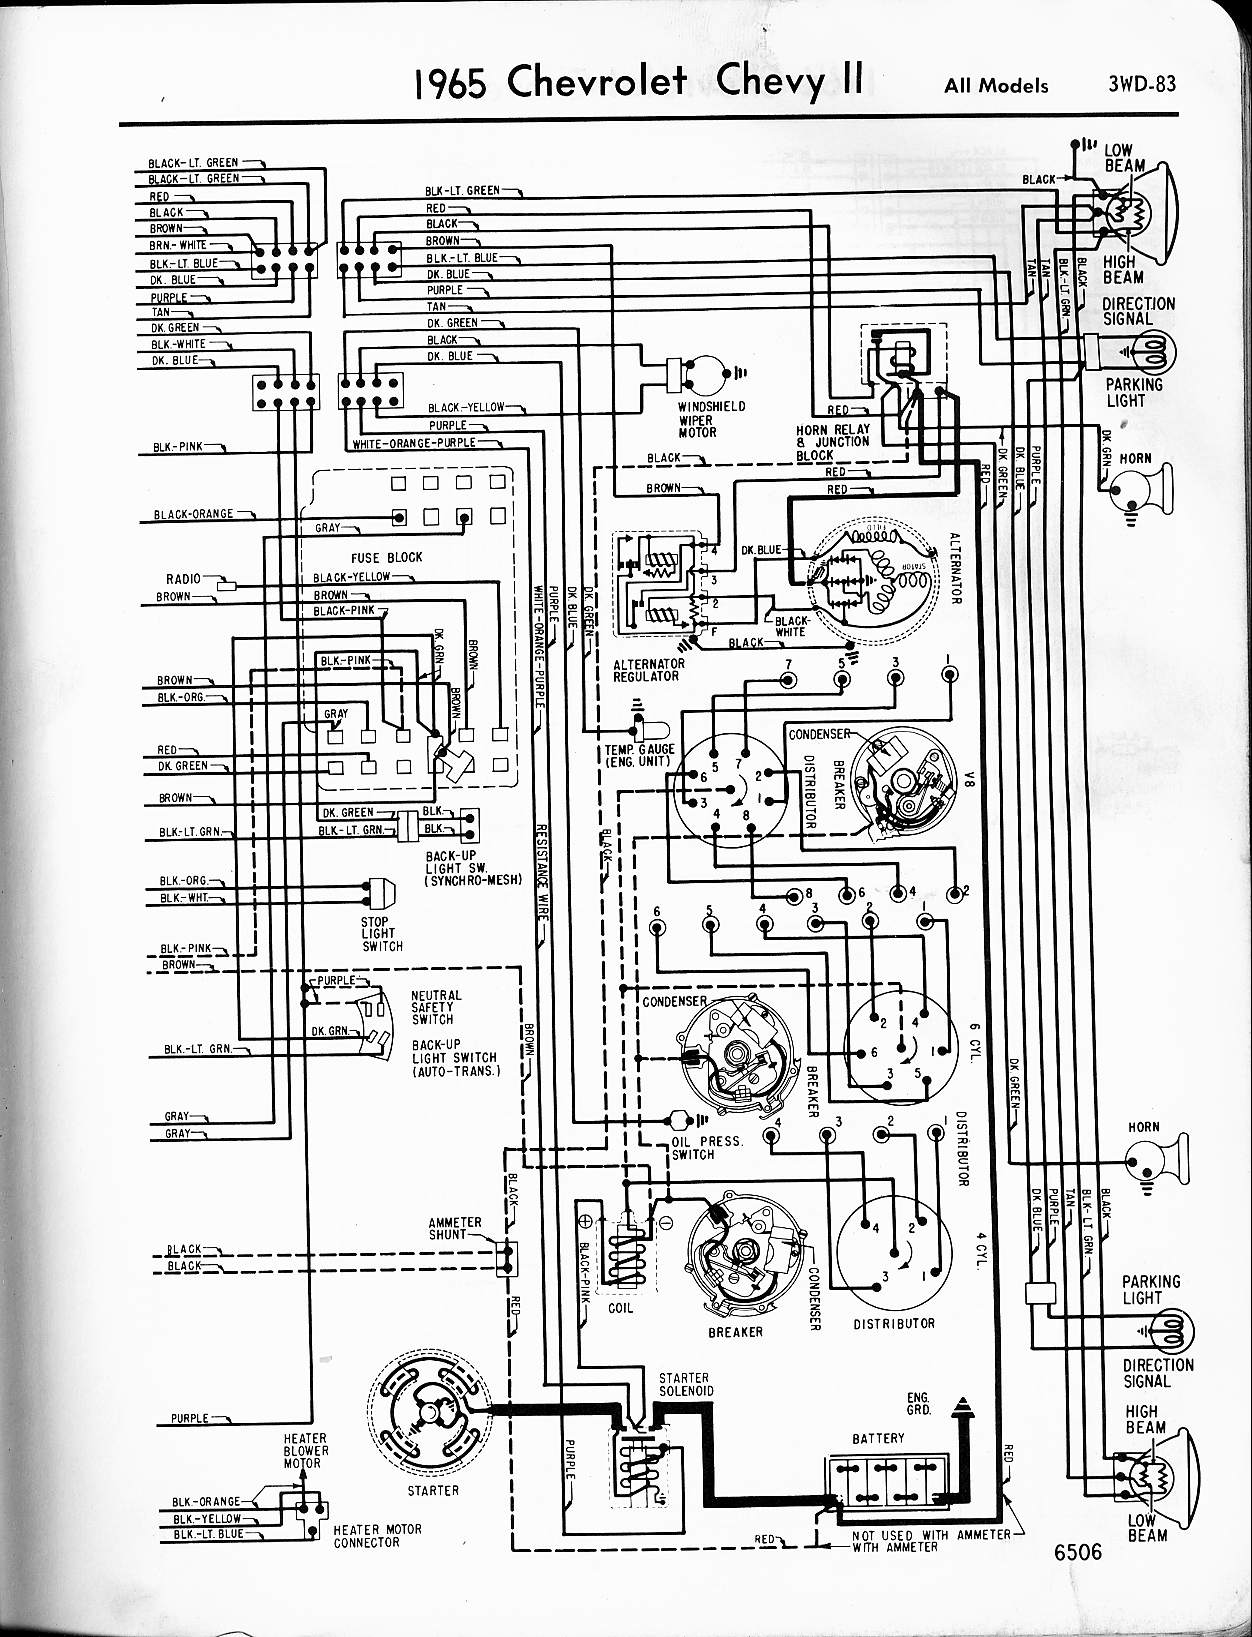 Basic Light Wiring Diagrams 71 Malibu - Block And Schematic Diagrams •